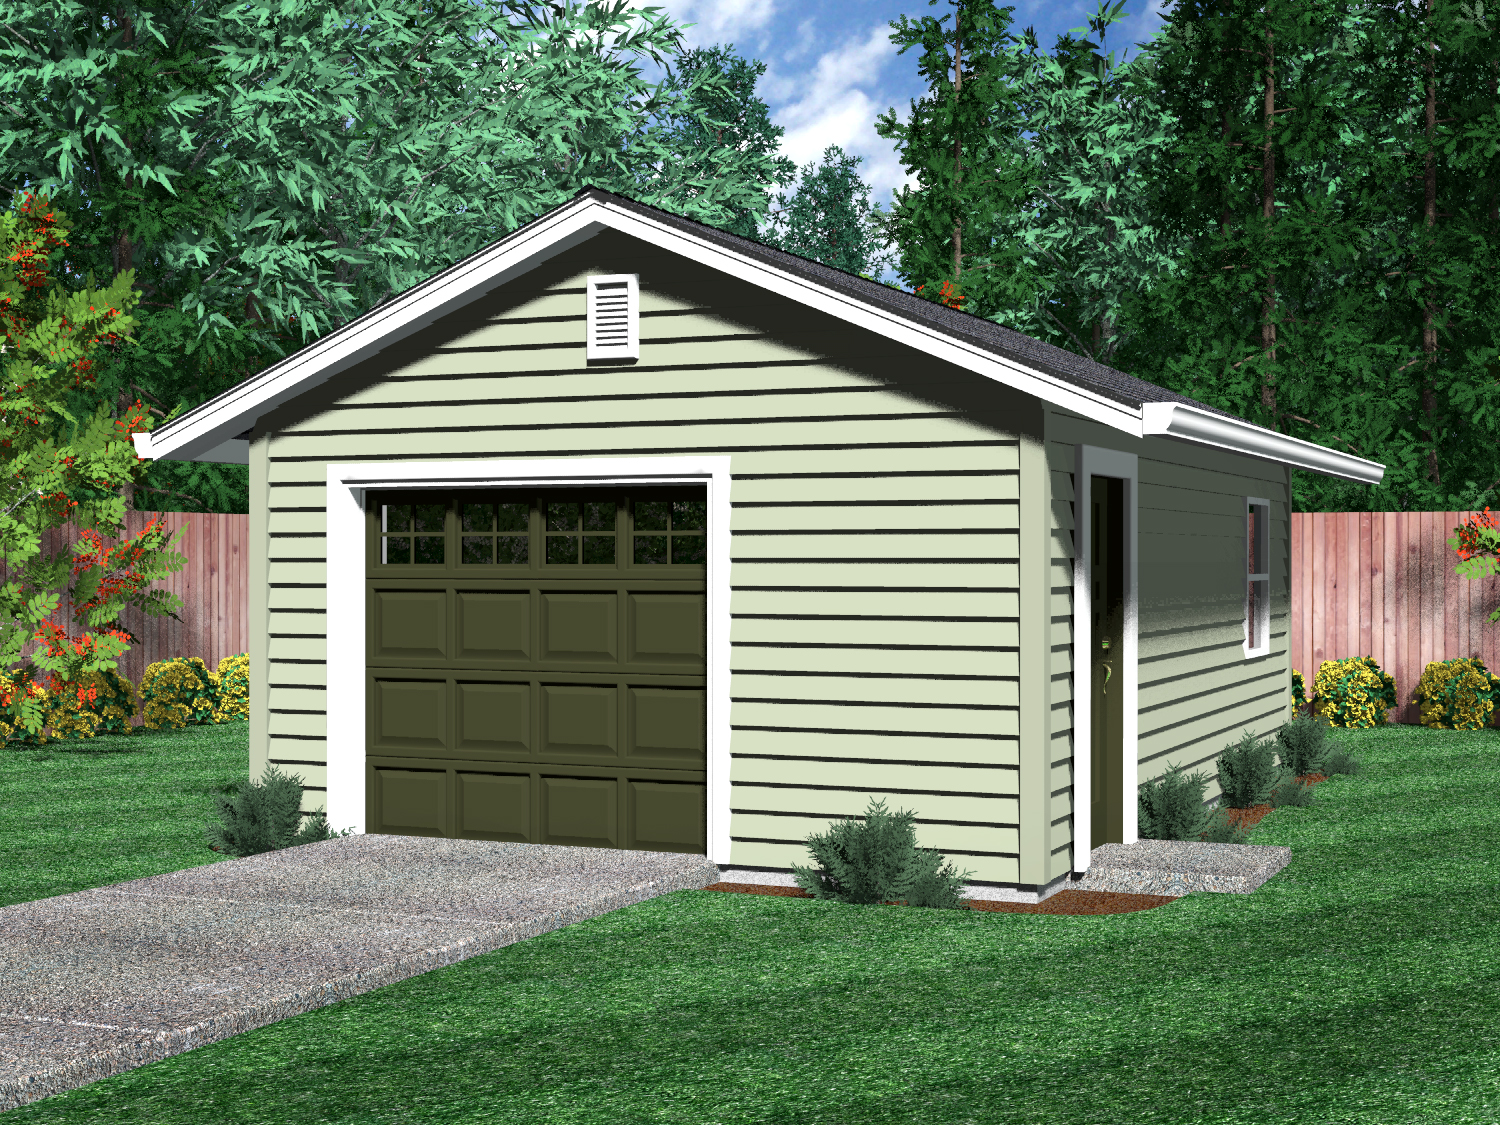 Detached garage floor plans free for Free garage plans online